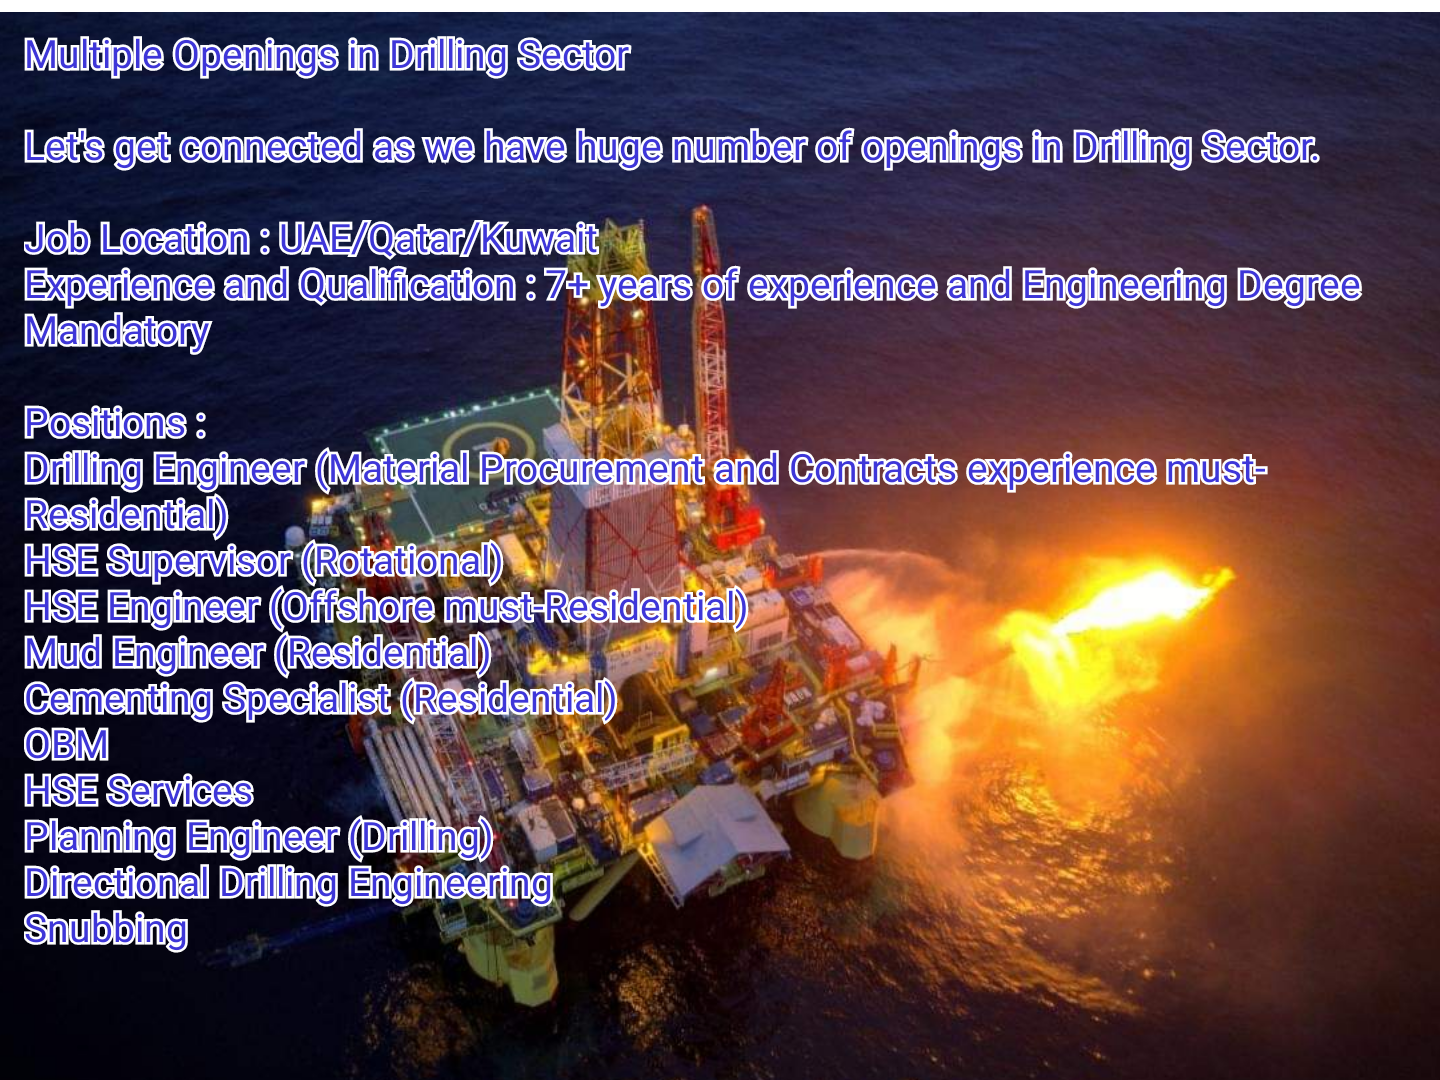 Oil and Gas Jobs: Drilling, HSE, OBM Multiple Openings